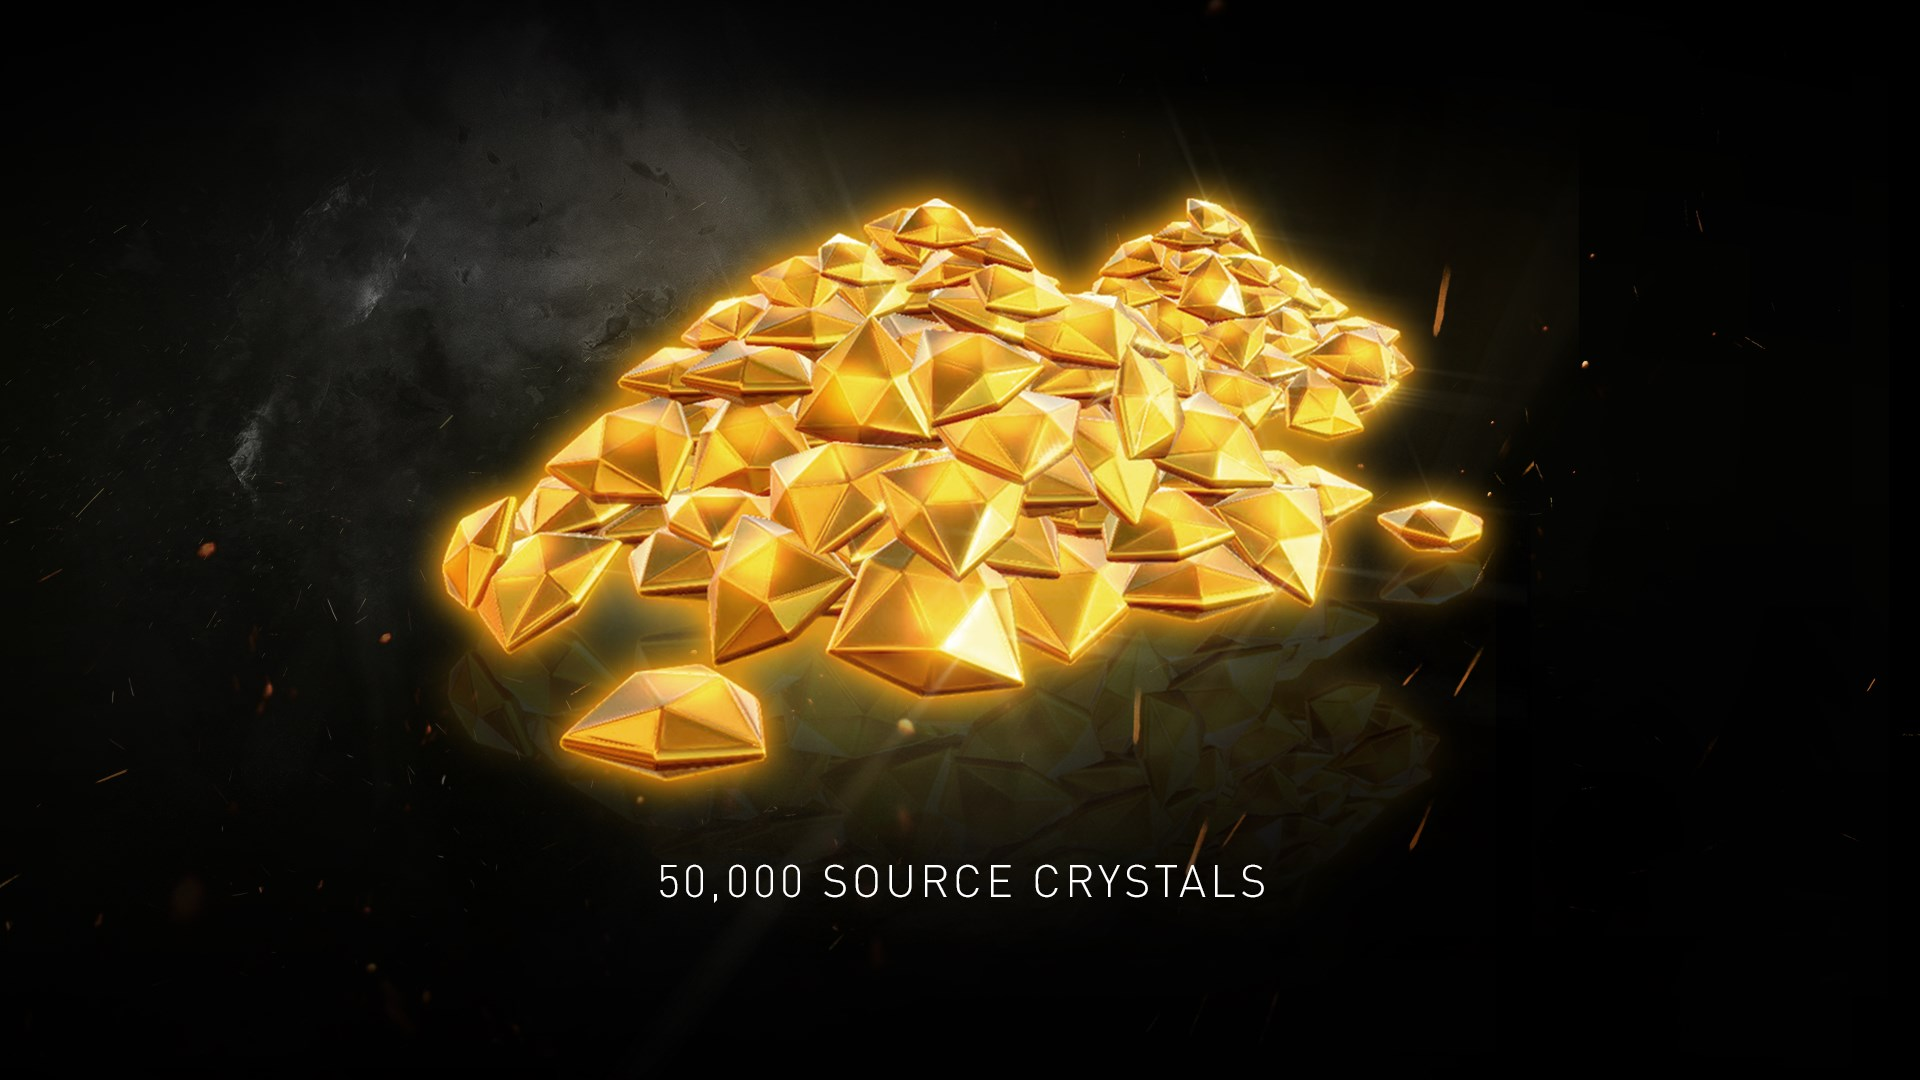 Injustice™ 2 - 50,000 Source Crystals